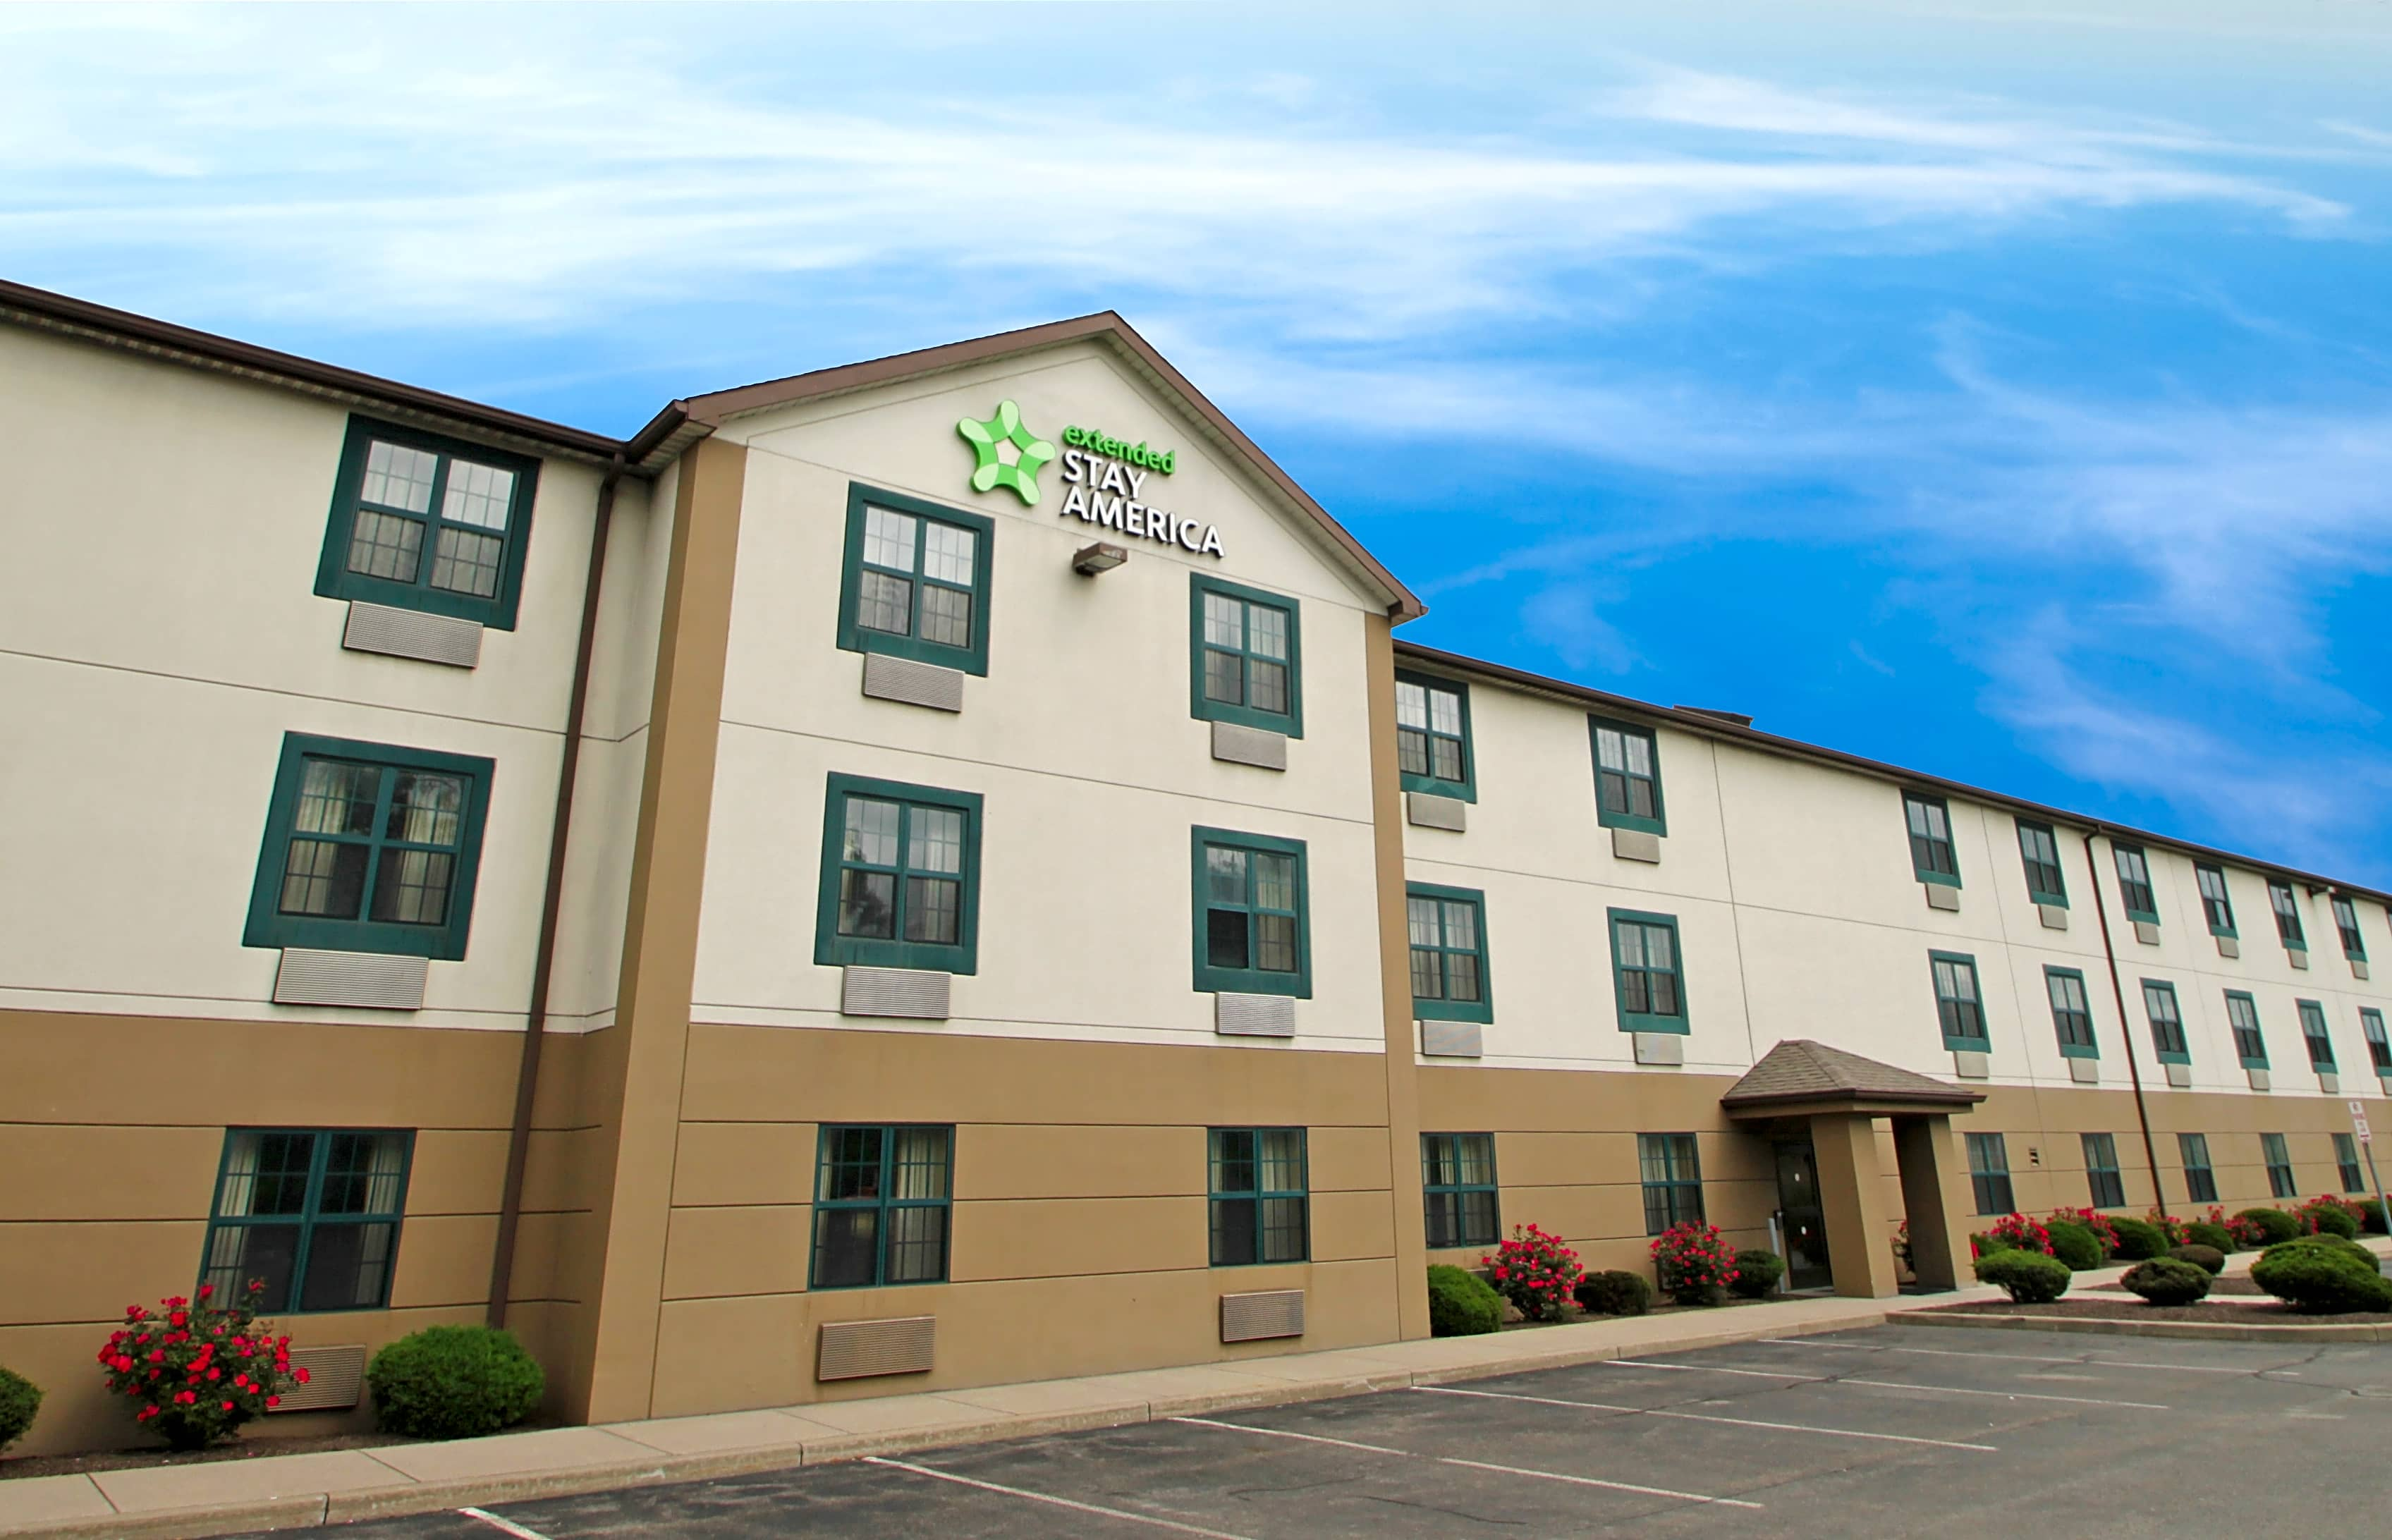 Apartments Near Daemen Furnished Studio - Buffalo - Amherst for Daemen College Students in Amherst, NY